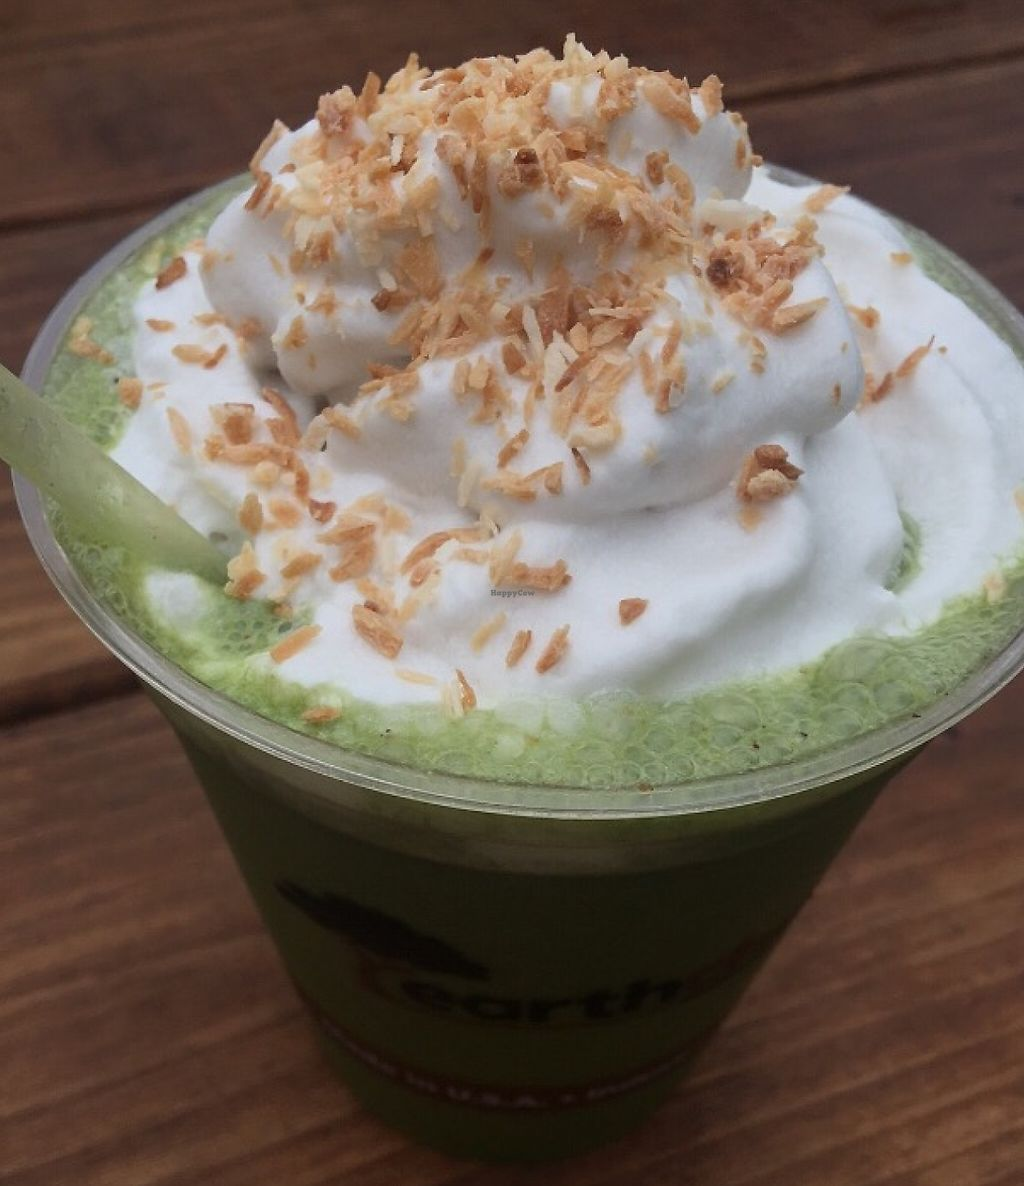 """Photo of Essential Juices and Smoothies - Food Cart  by <a href=""""/members/profile/Arthousebill"""">Arthousebill</a> <br/>Chai smoothie with coconut whip <br/> June 18, 2016  - <a href='/contact/abuse/image/64798/221693'>Report</a>"""